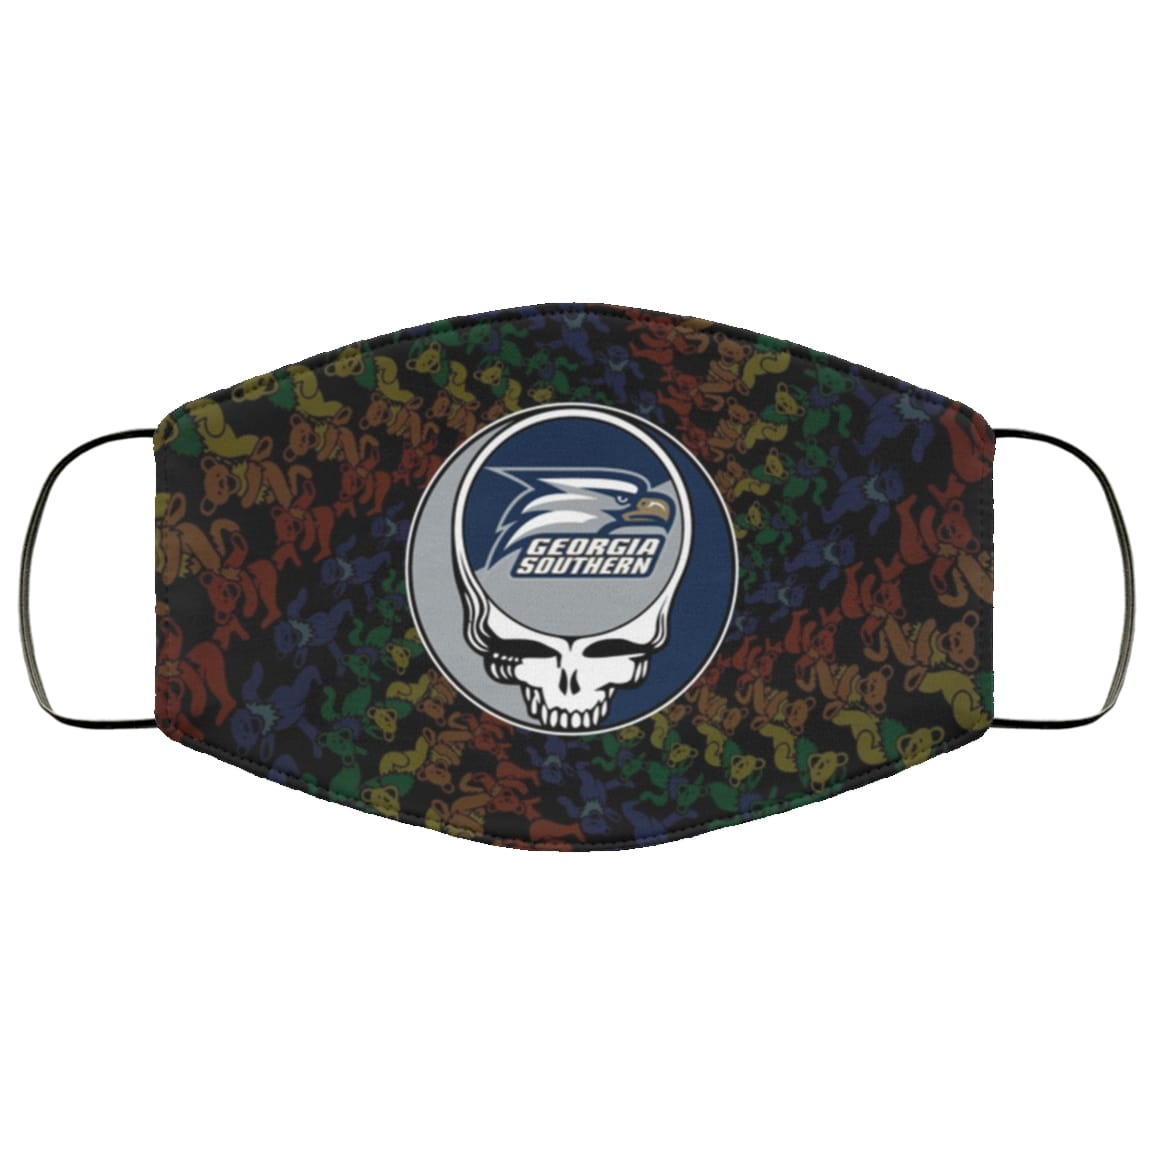 Grateful dead georgia southern eagles full over printed face mask 4